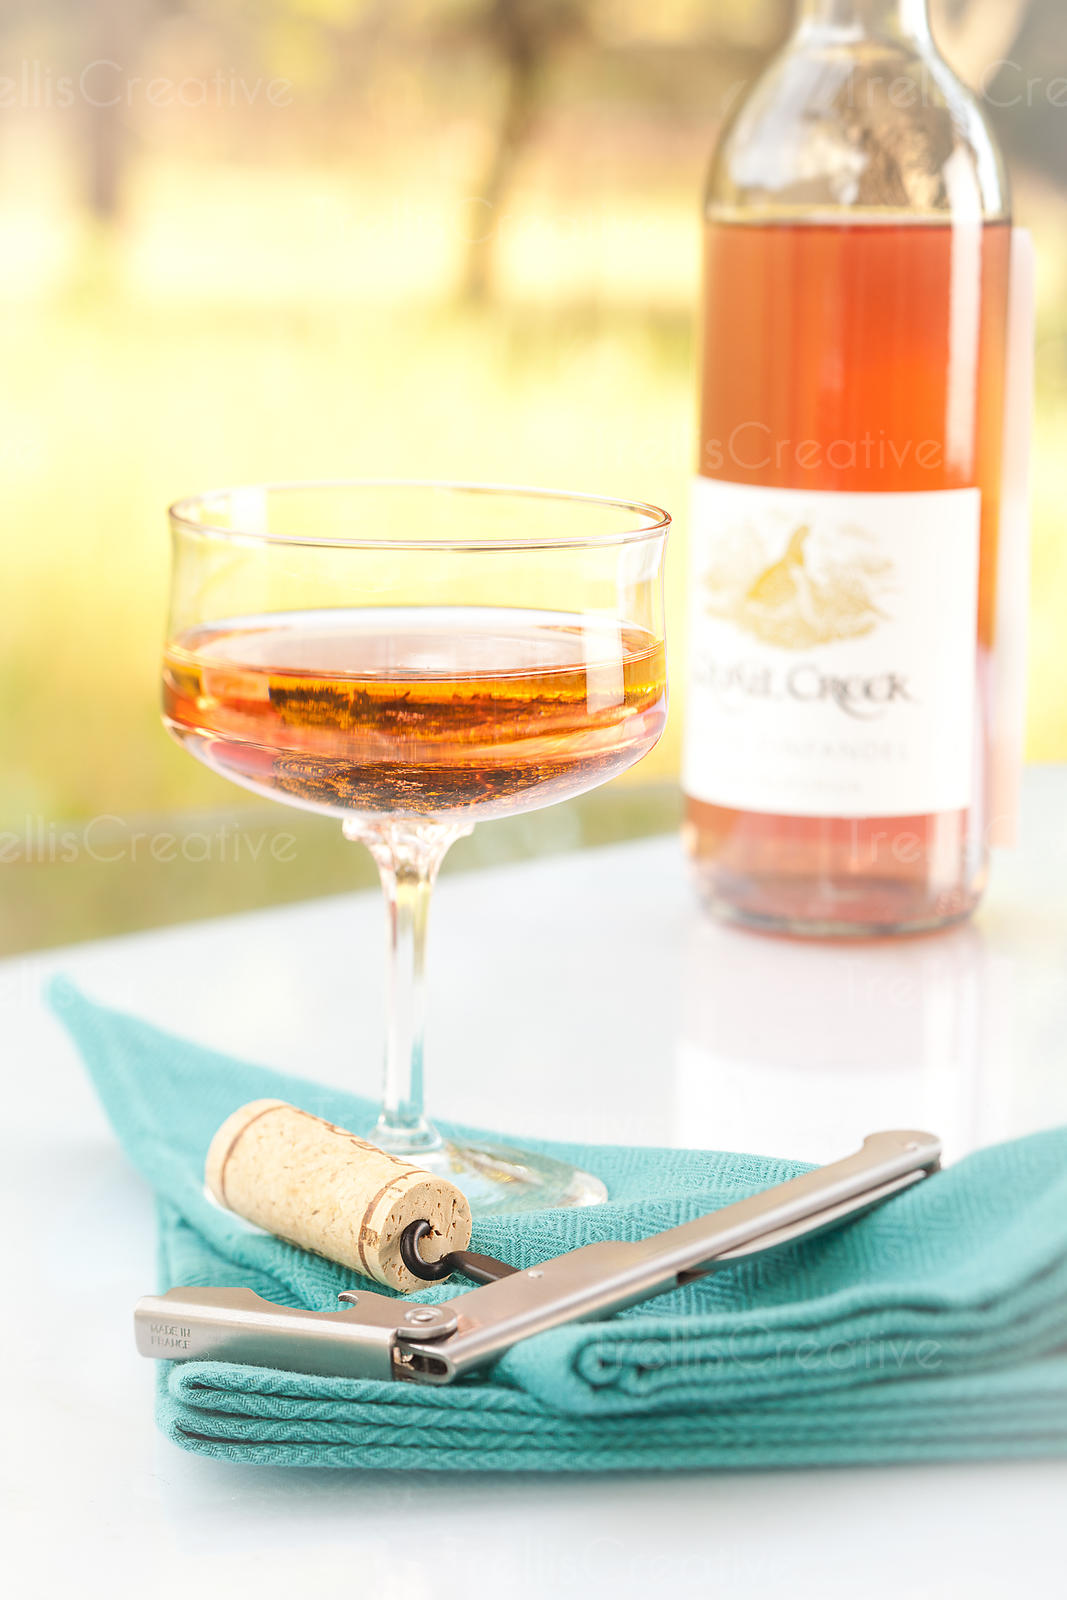 An interesting shaped wine glass with an openend bottle of rose wine on an outdoor patio table